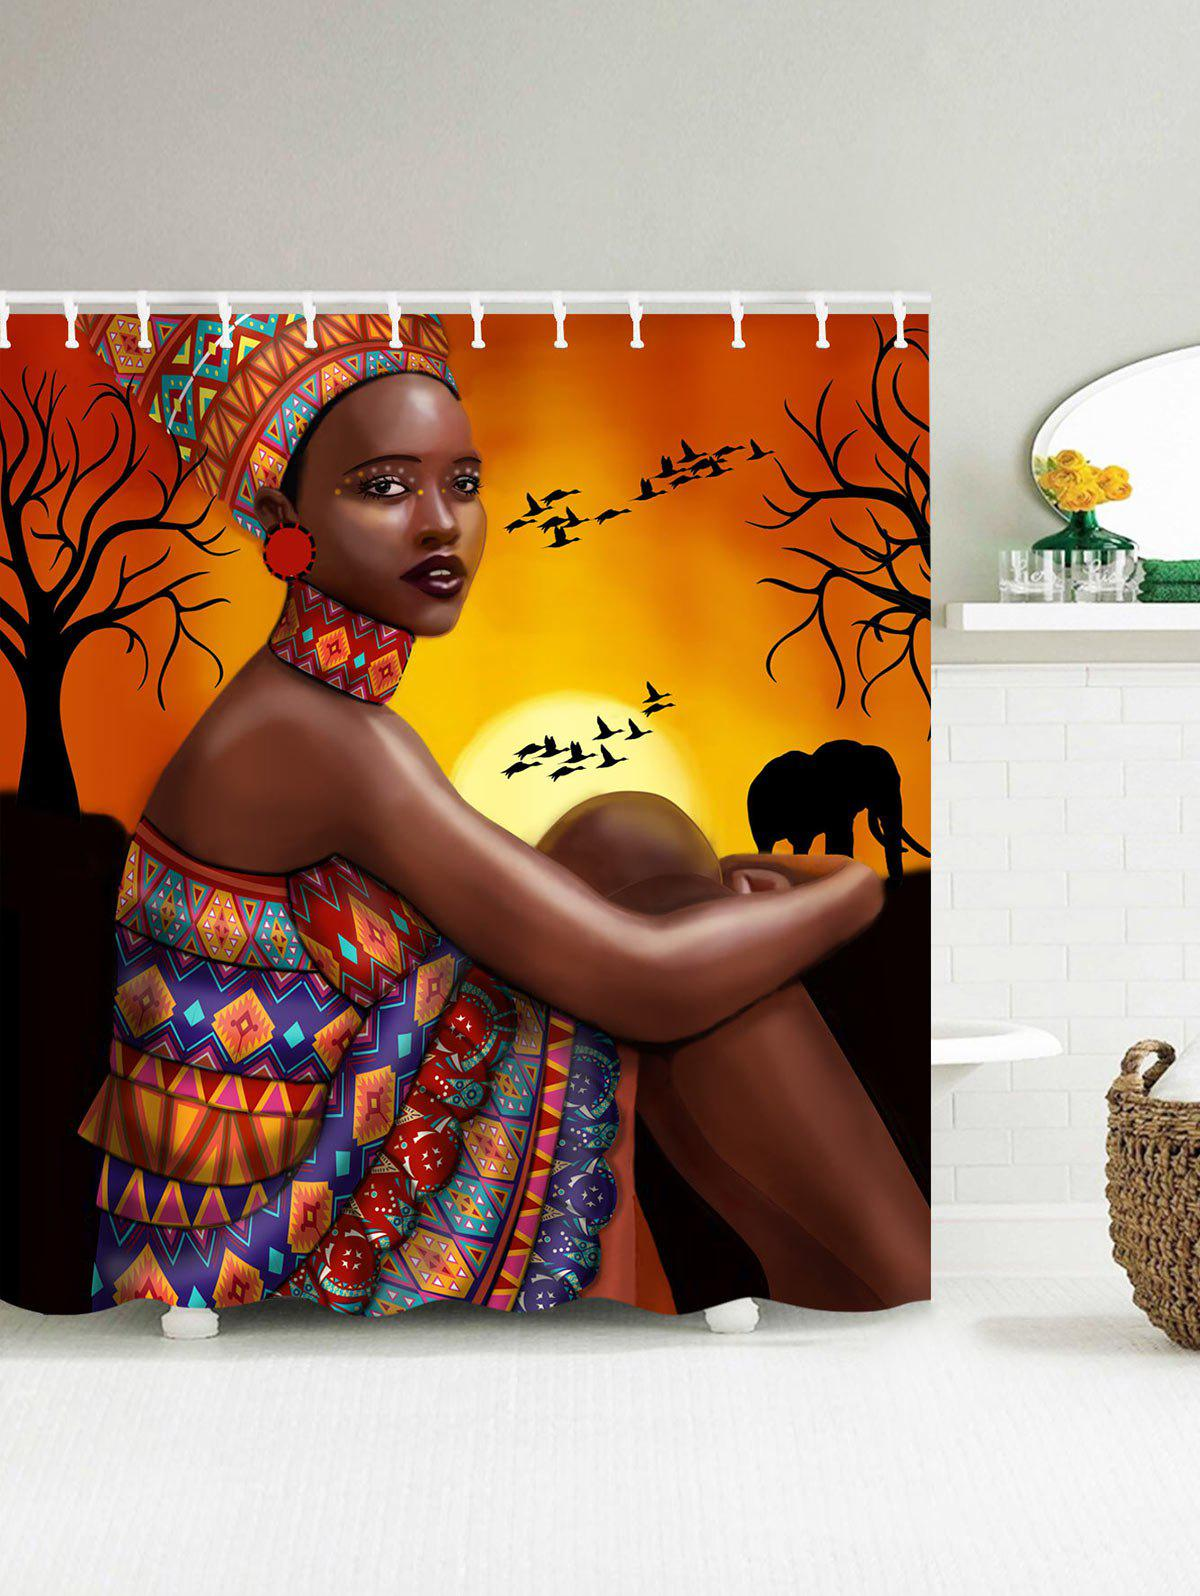 Mould Proof Shower Curtain with African Tribal Girl PrintHOME<br><br>Size: 180*200CM; Color: COLORMIX; Products Type: Shower Curtains; Materials: Polyester; Pattern: Figure; Style: Retro/Vintage; Number of Hook Holes: 150CM Width: 10; 180CM Width: 12.; Package Contents: 1 x Shower Curtain 1 x Hooks(Set);